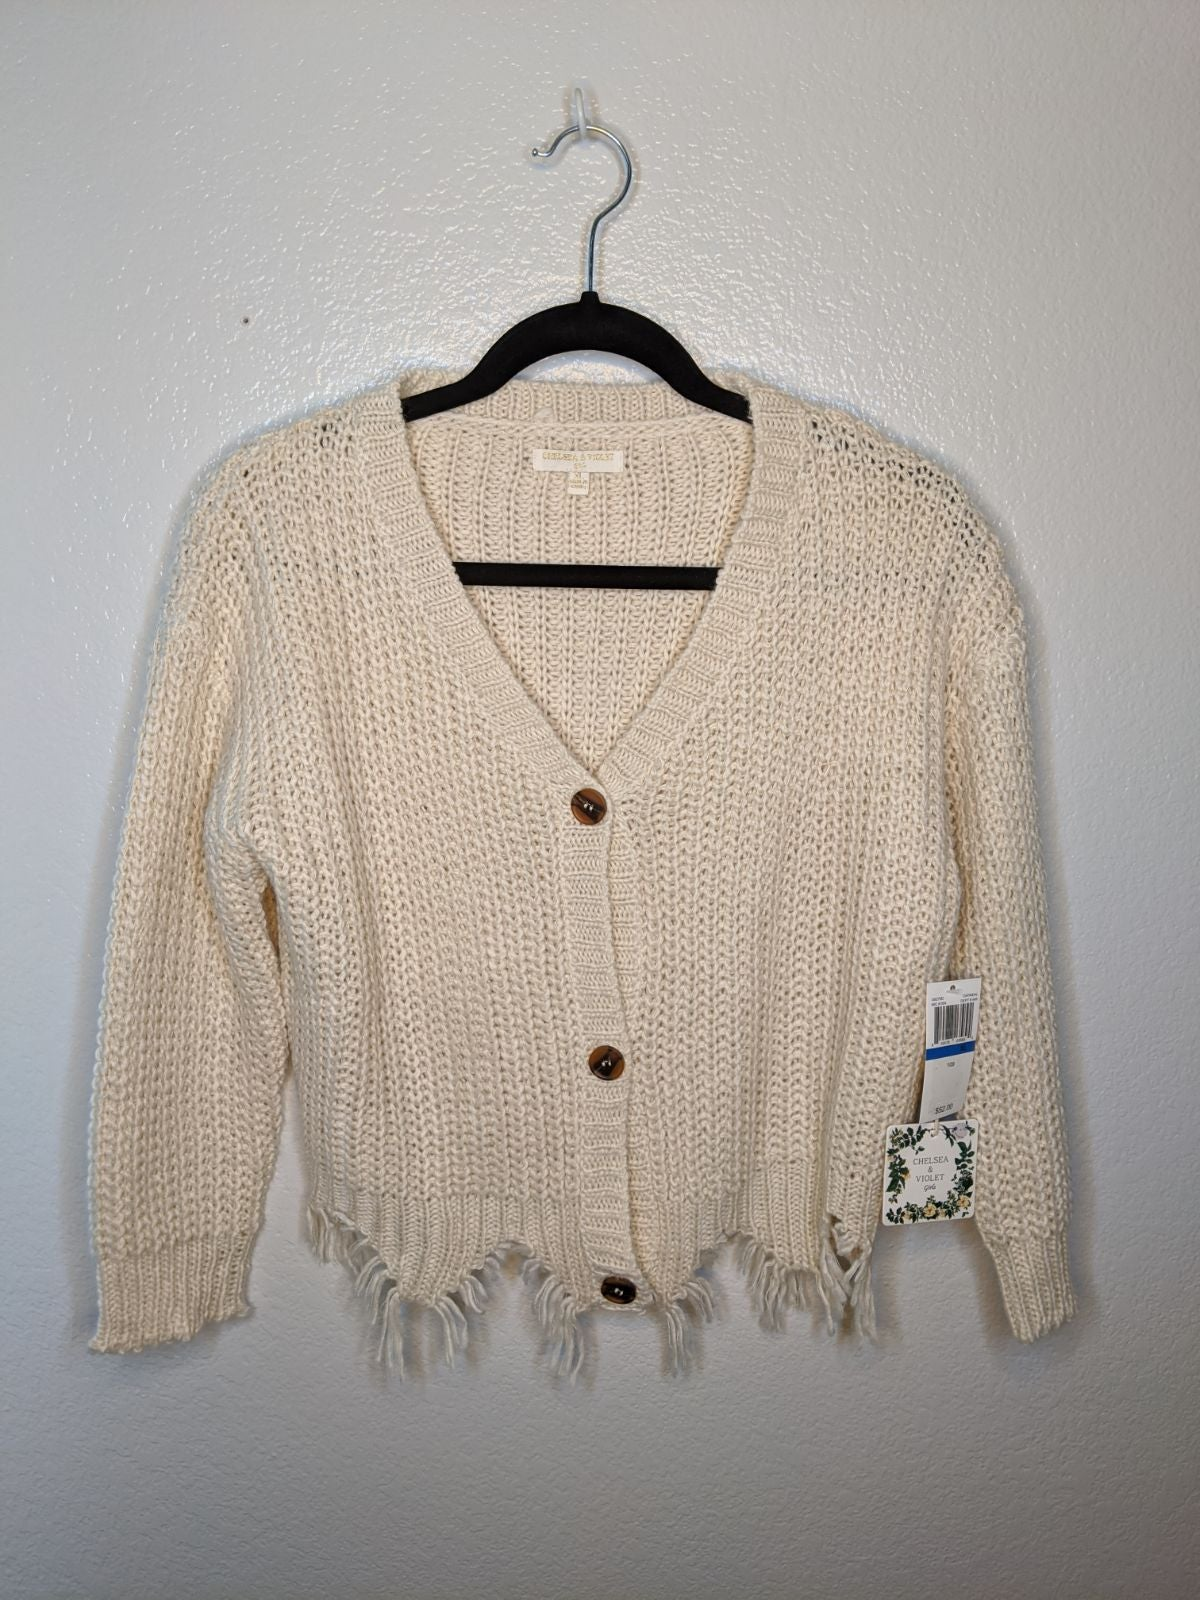 Distressed Knitted Cardigan